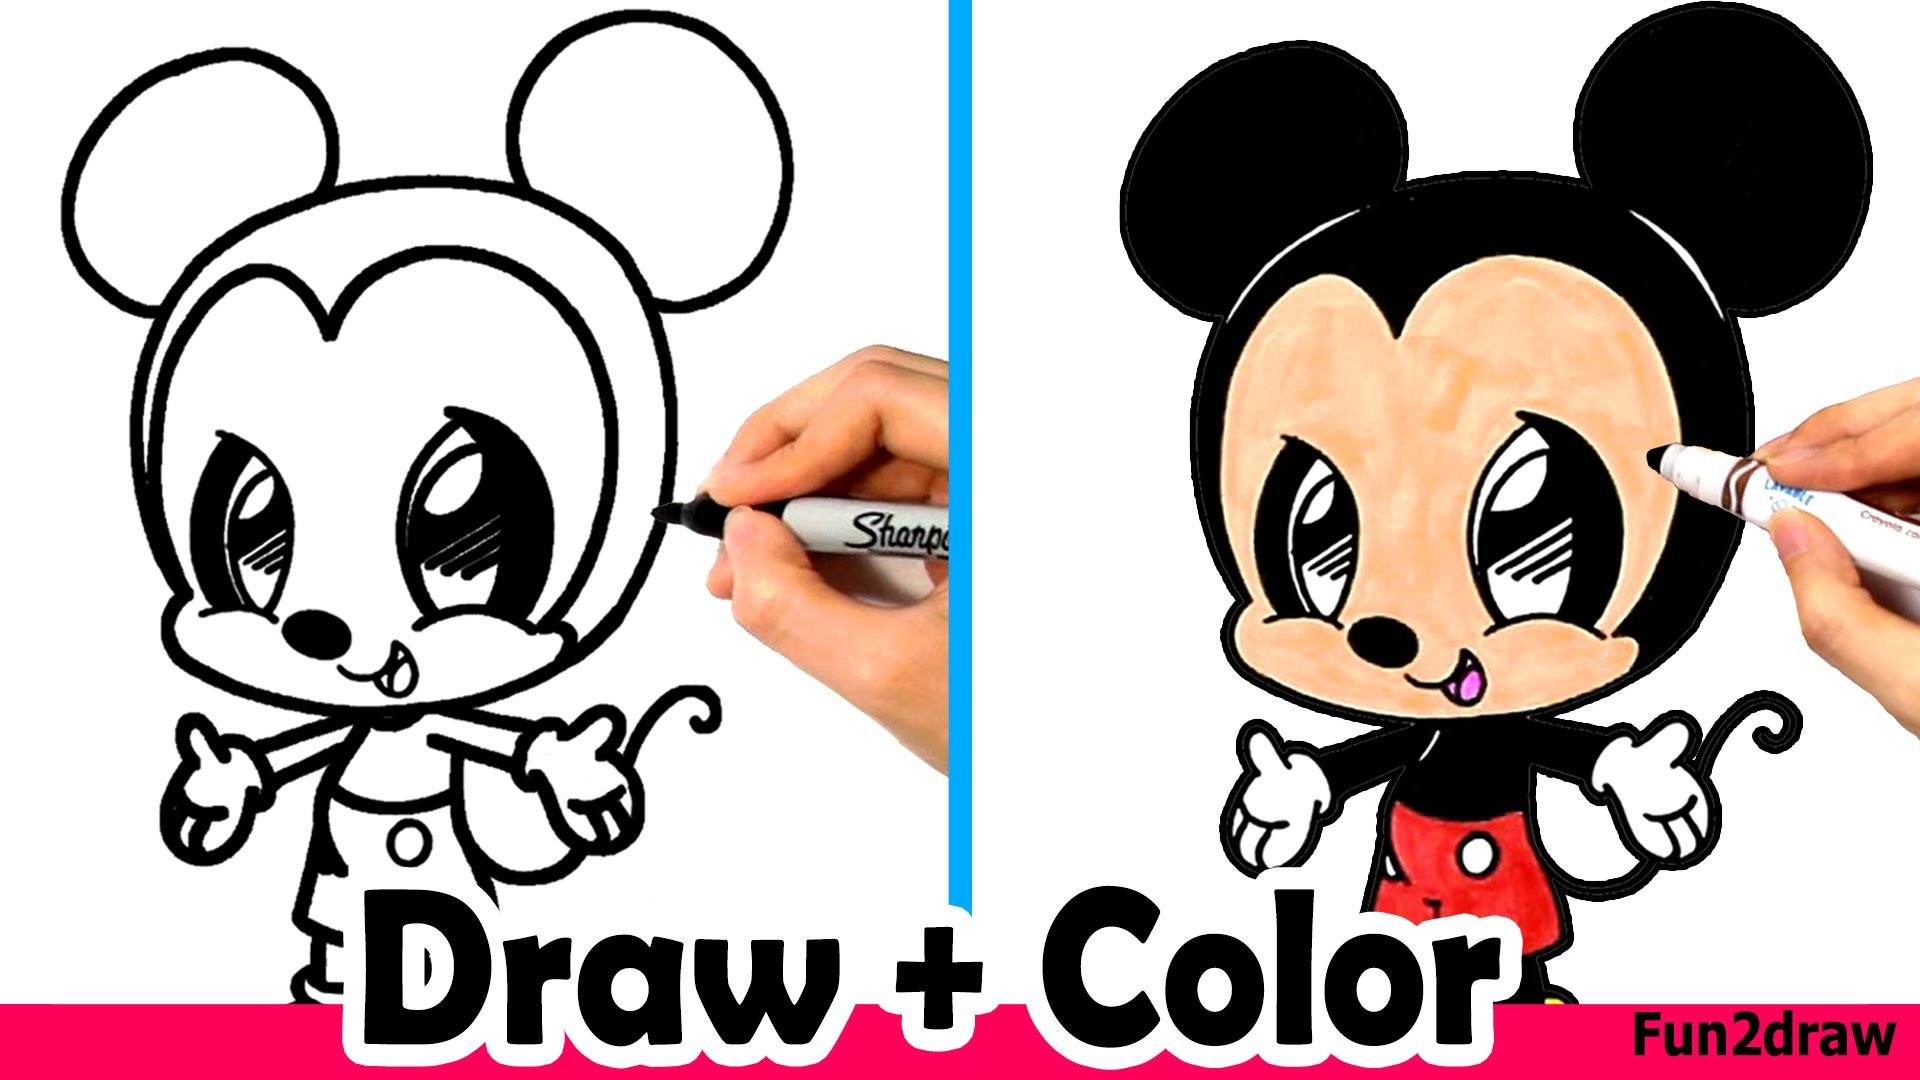 How To Draw Mickey Mouse Cute Easy And Color With Crayola Markers Youtube Minnie Mouse Drawing Mickey Mouse Drawings Mickey Mouse Drawing Easy